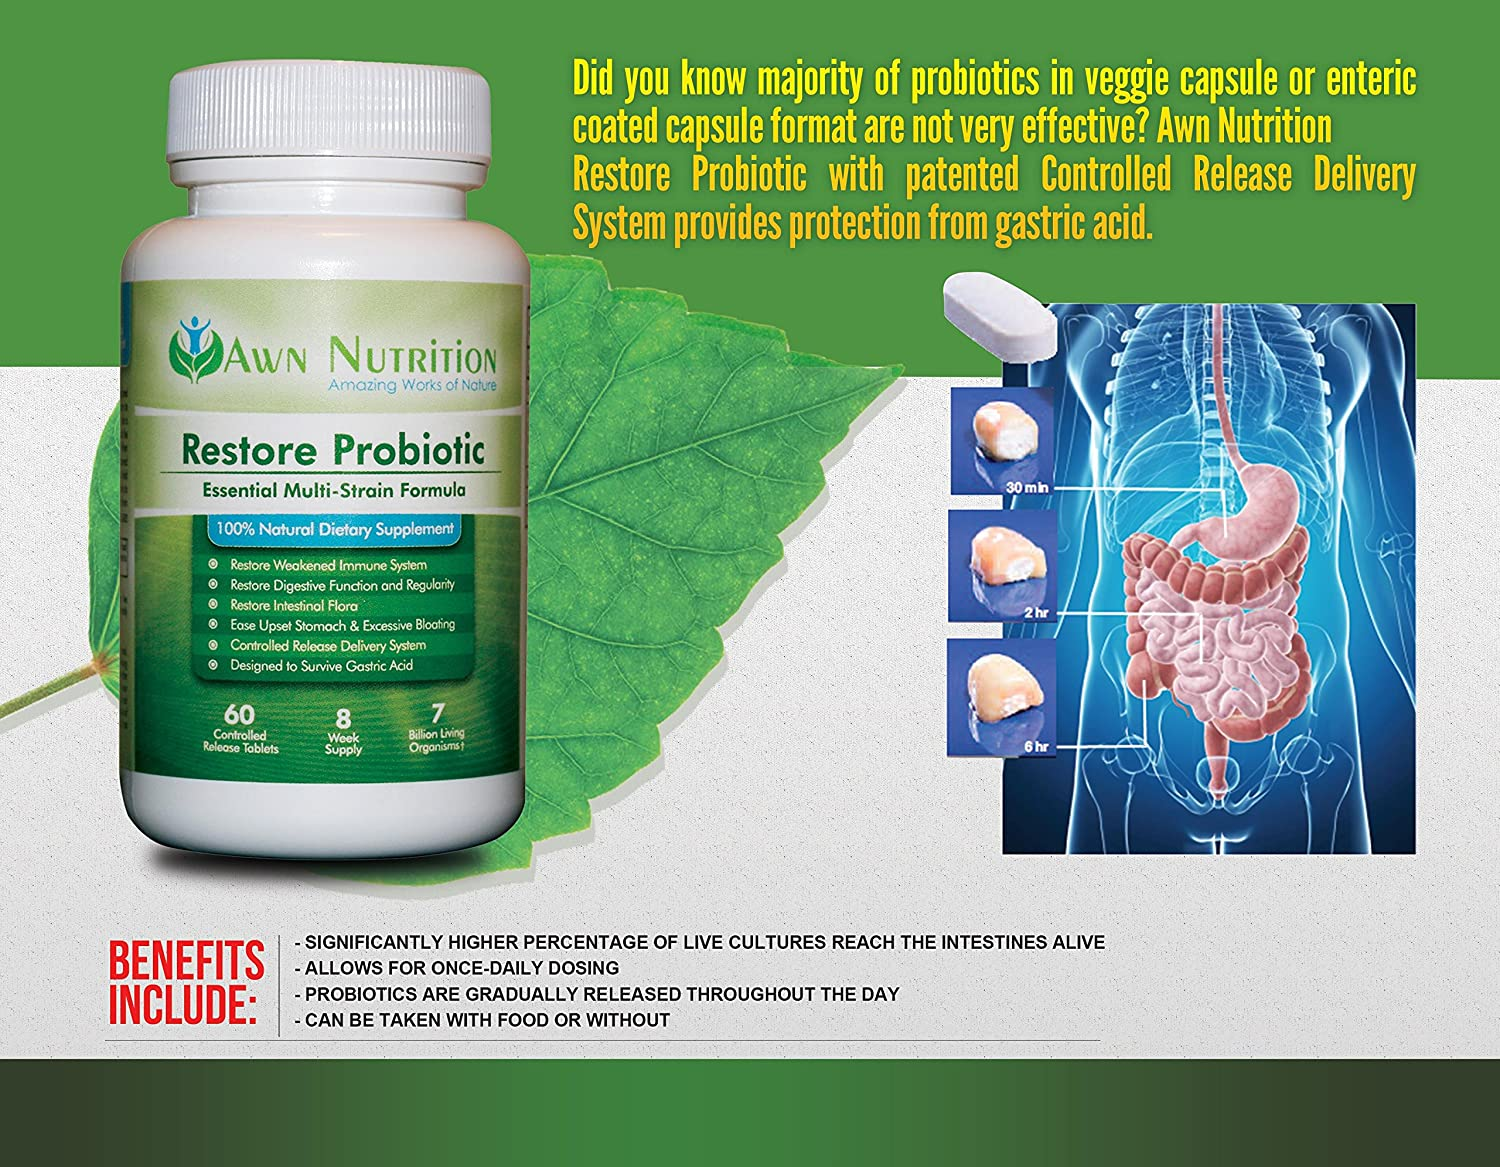 Amazon.com: Awn Nutrition Restore Probiotic Supplement - 60 Time Release Daily Tablets with Essential Multi-Strain Formula and Patented Controlled Release ...